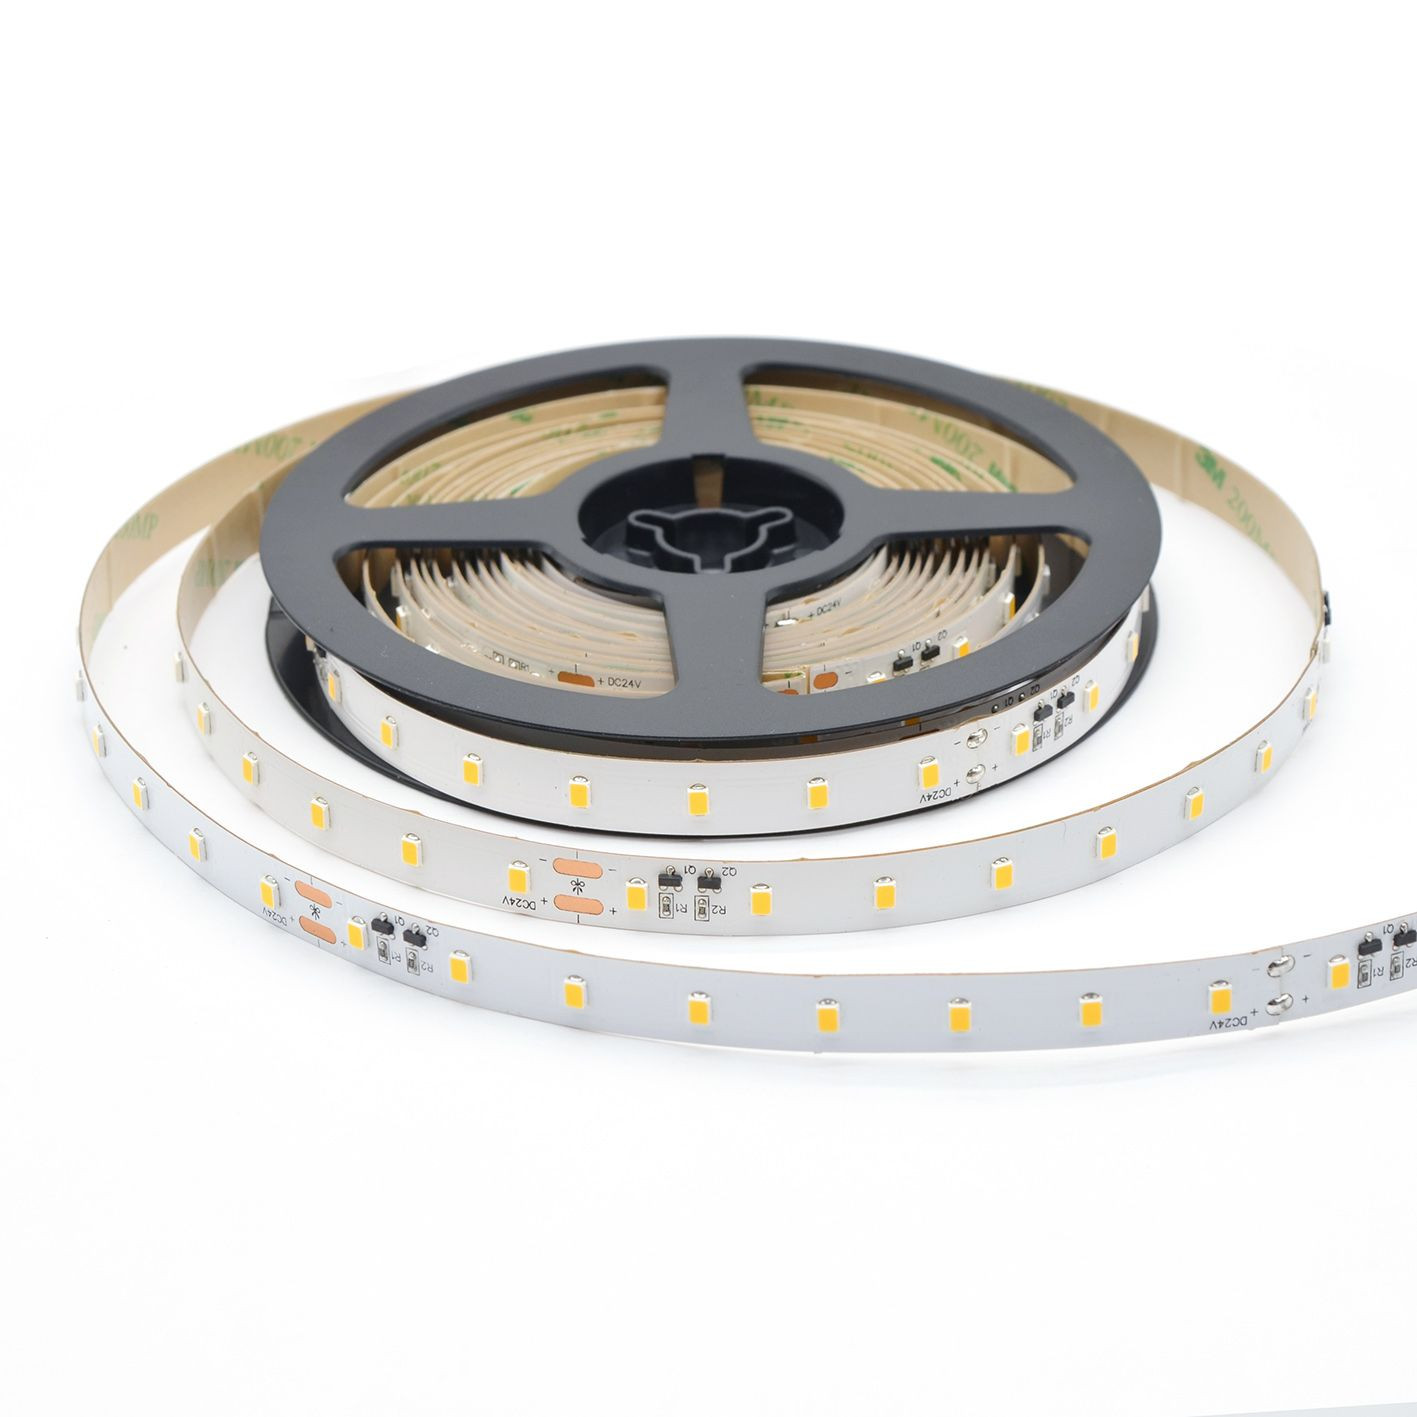 SMD 2835 LED strip light 2700K-6500K DC 12V 24V 6W-18W/Meter CE ROHS ETL UL 50,000hrs lifespan samples in stock fast delivery